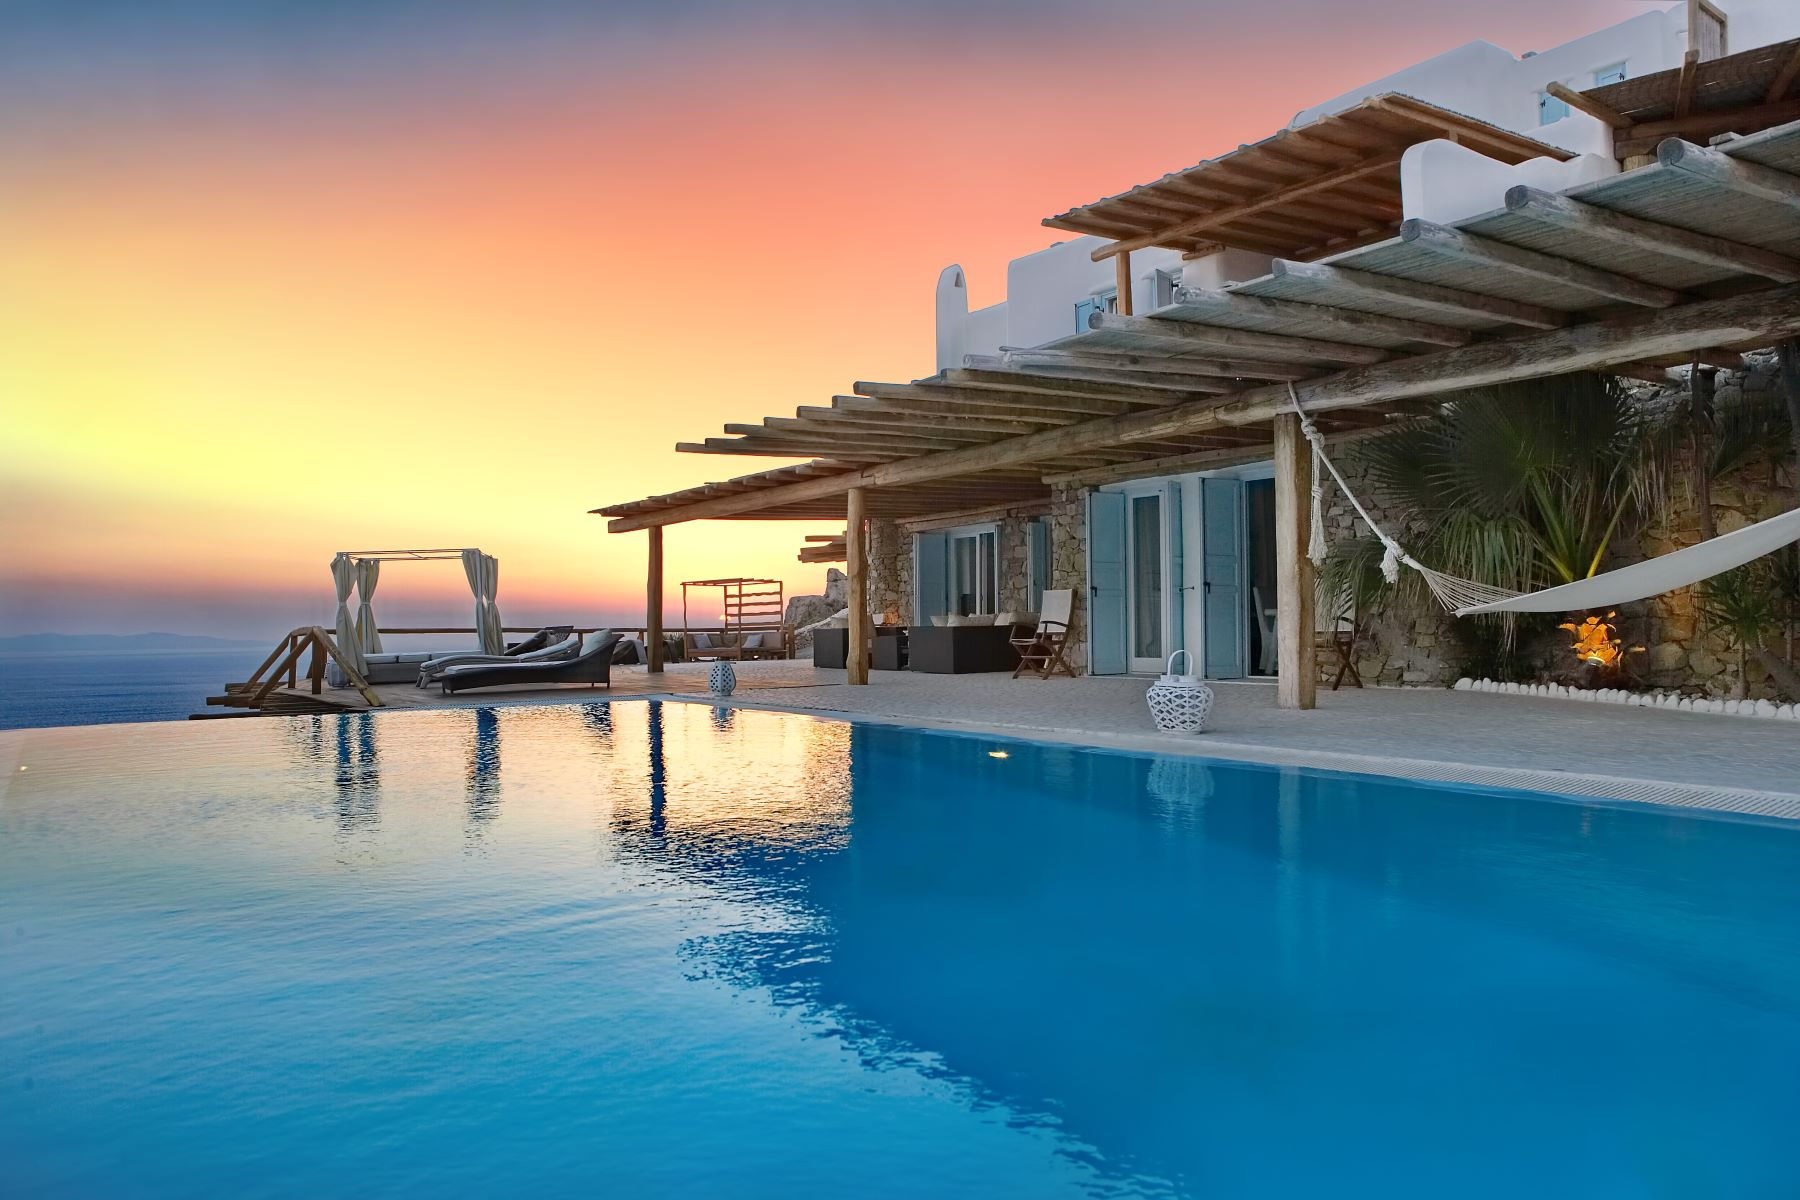 Single Family Home for Sale at Garden of Eden Mykonos, Southern Aegean, Greece